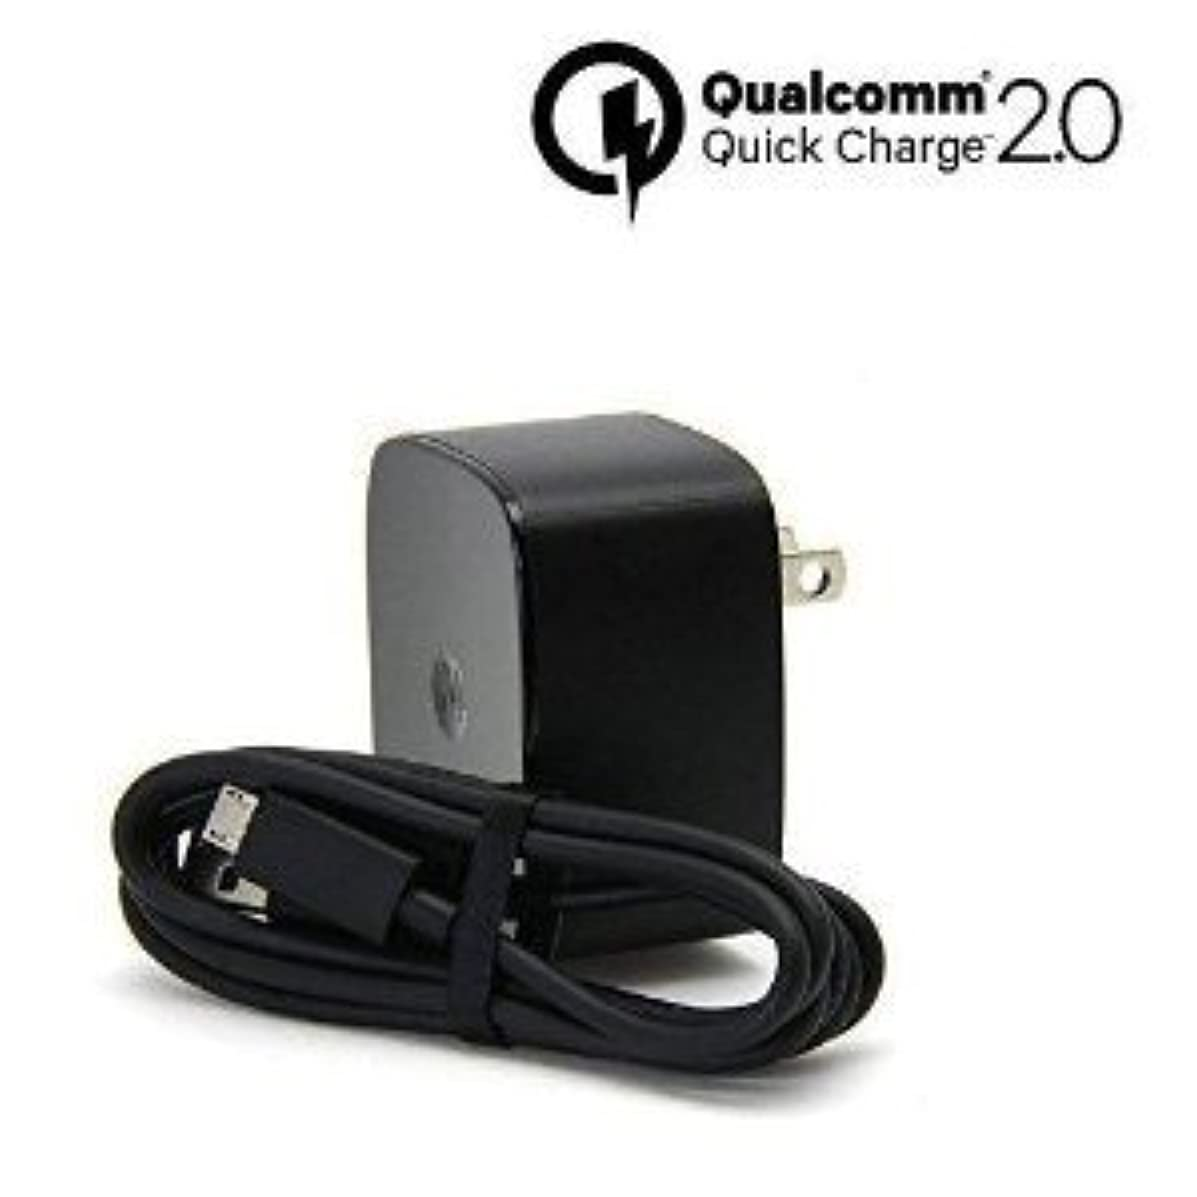 Turbo Fast Powered 15W Wall Charging Kit Works for Kyocera DuraXV LTE with Quick Charge 2.0 USB 1M (3.3ft) MicroUSB Cable!